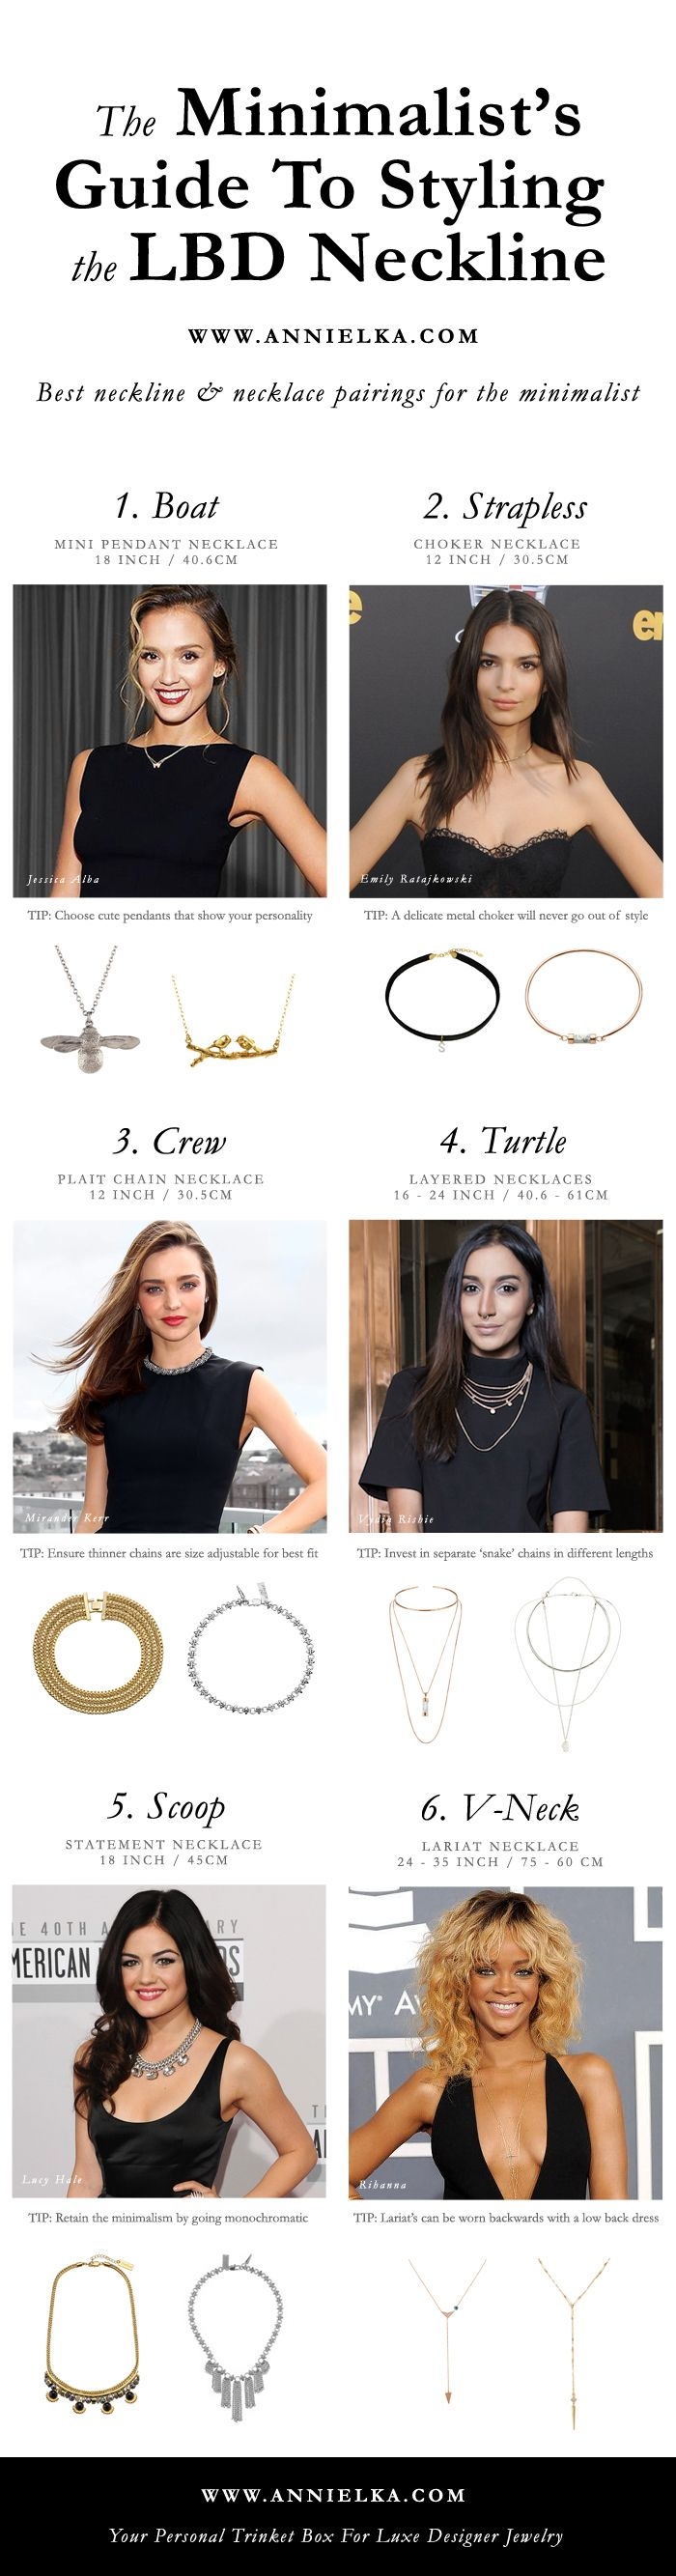 What necklace to wear with what neckline - A minimalists guide to necklace vs neckline pairing. Tips for matching necklaces for crew neck, boat neck, v neck, scoop neck, turtle neck and plunging neckline.